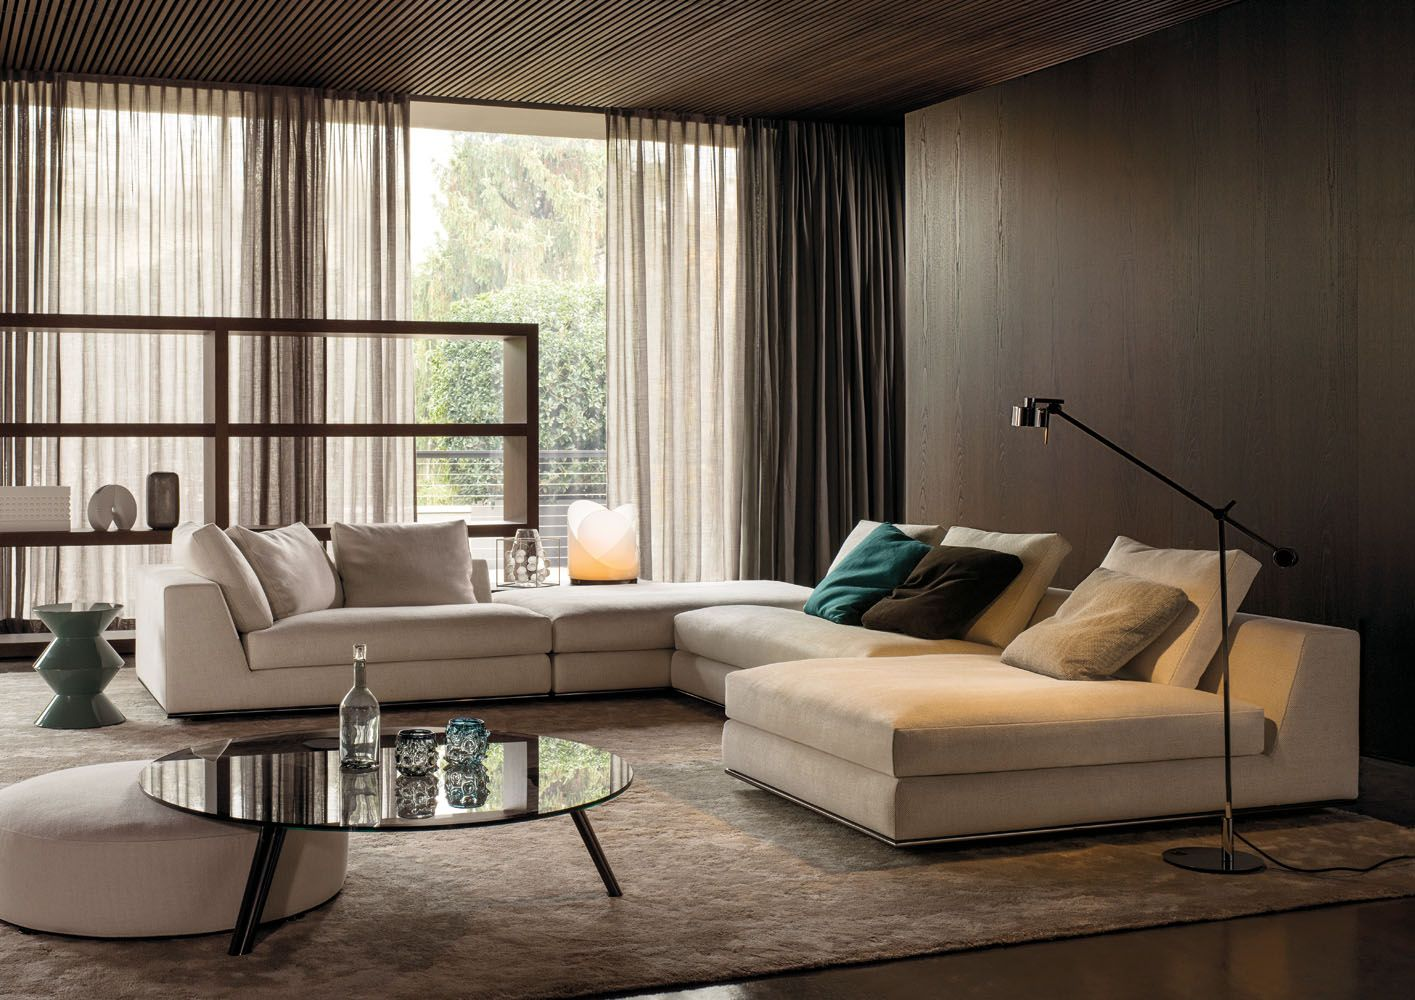 minotti ipad hamilton modulo hamilton sofas en. Black Bedroom Furniture Sets. Home Design Ideas